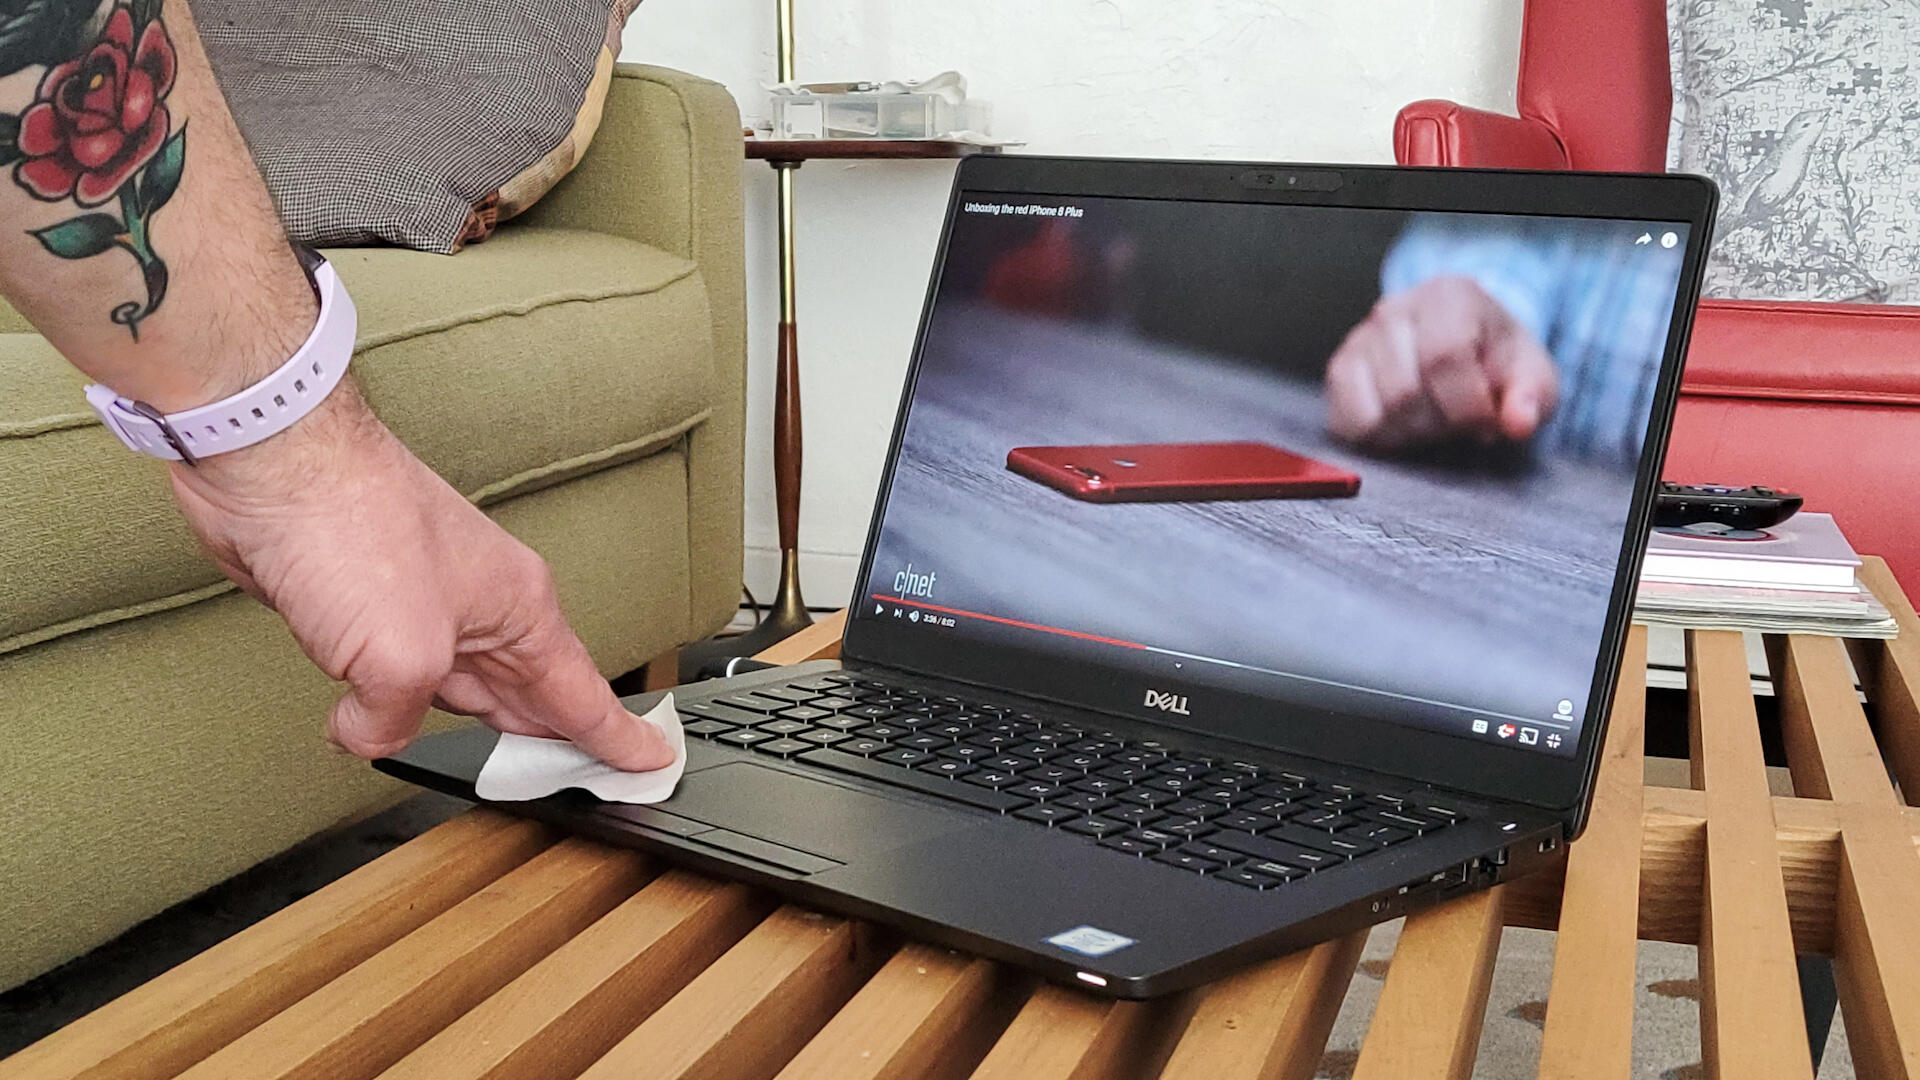 Video: How to clean your laptop